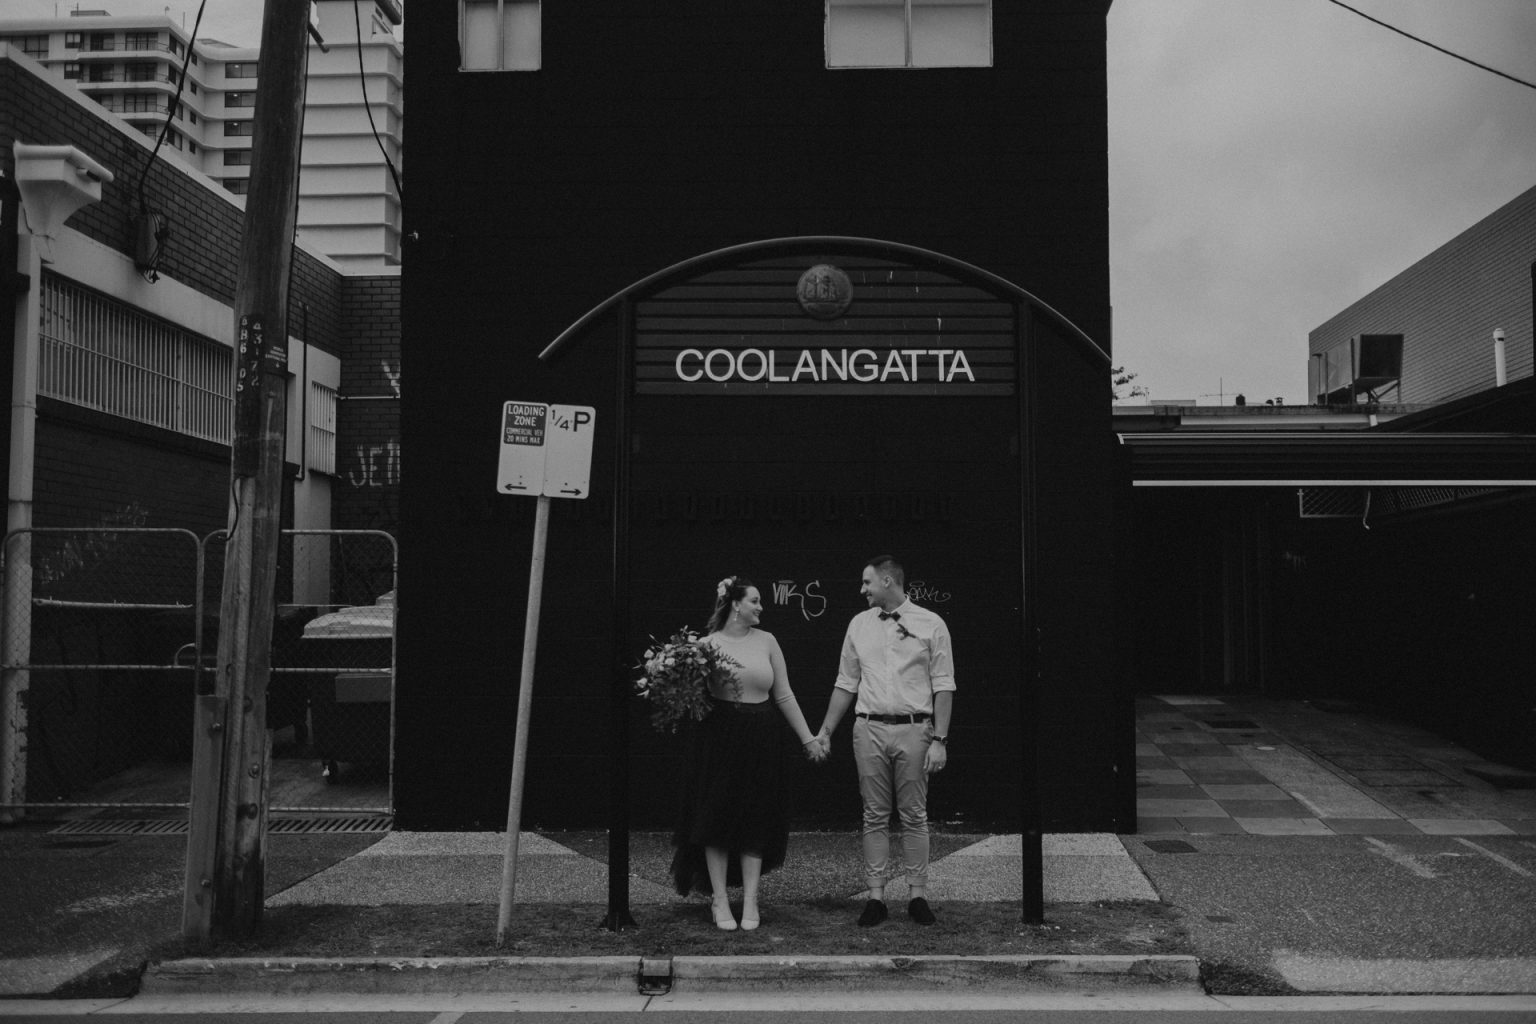 bride and groom by Coolangatta sign